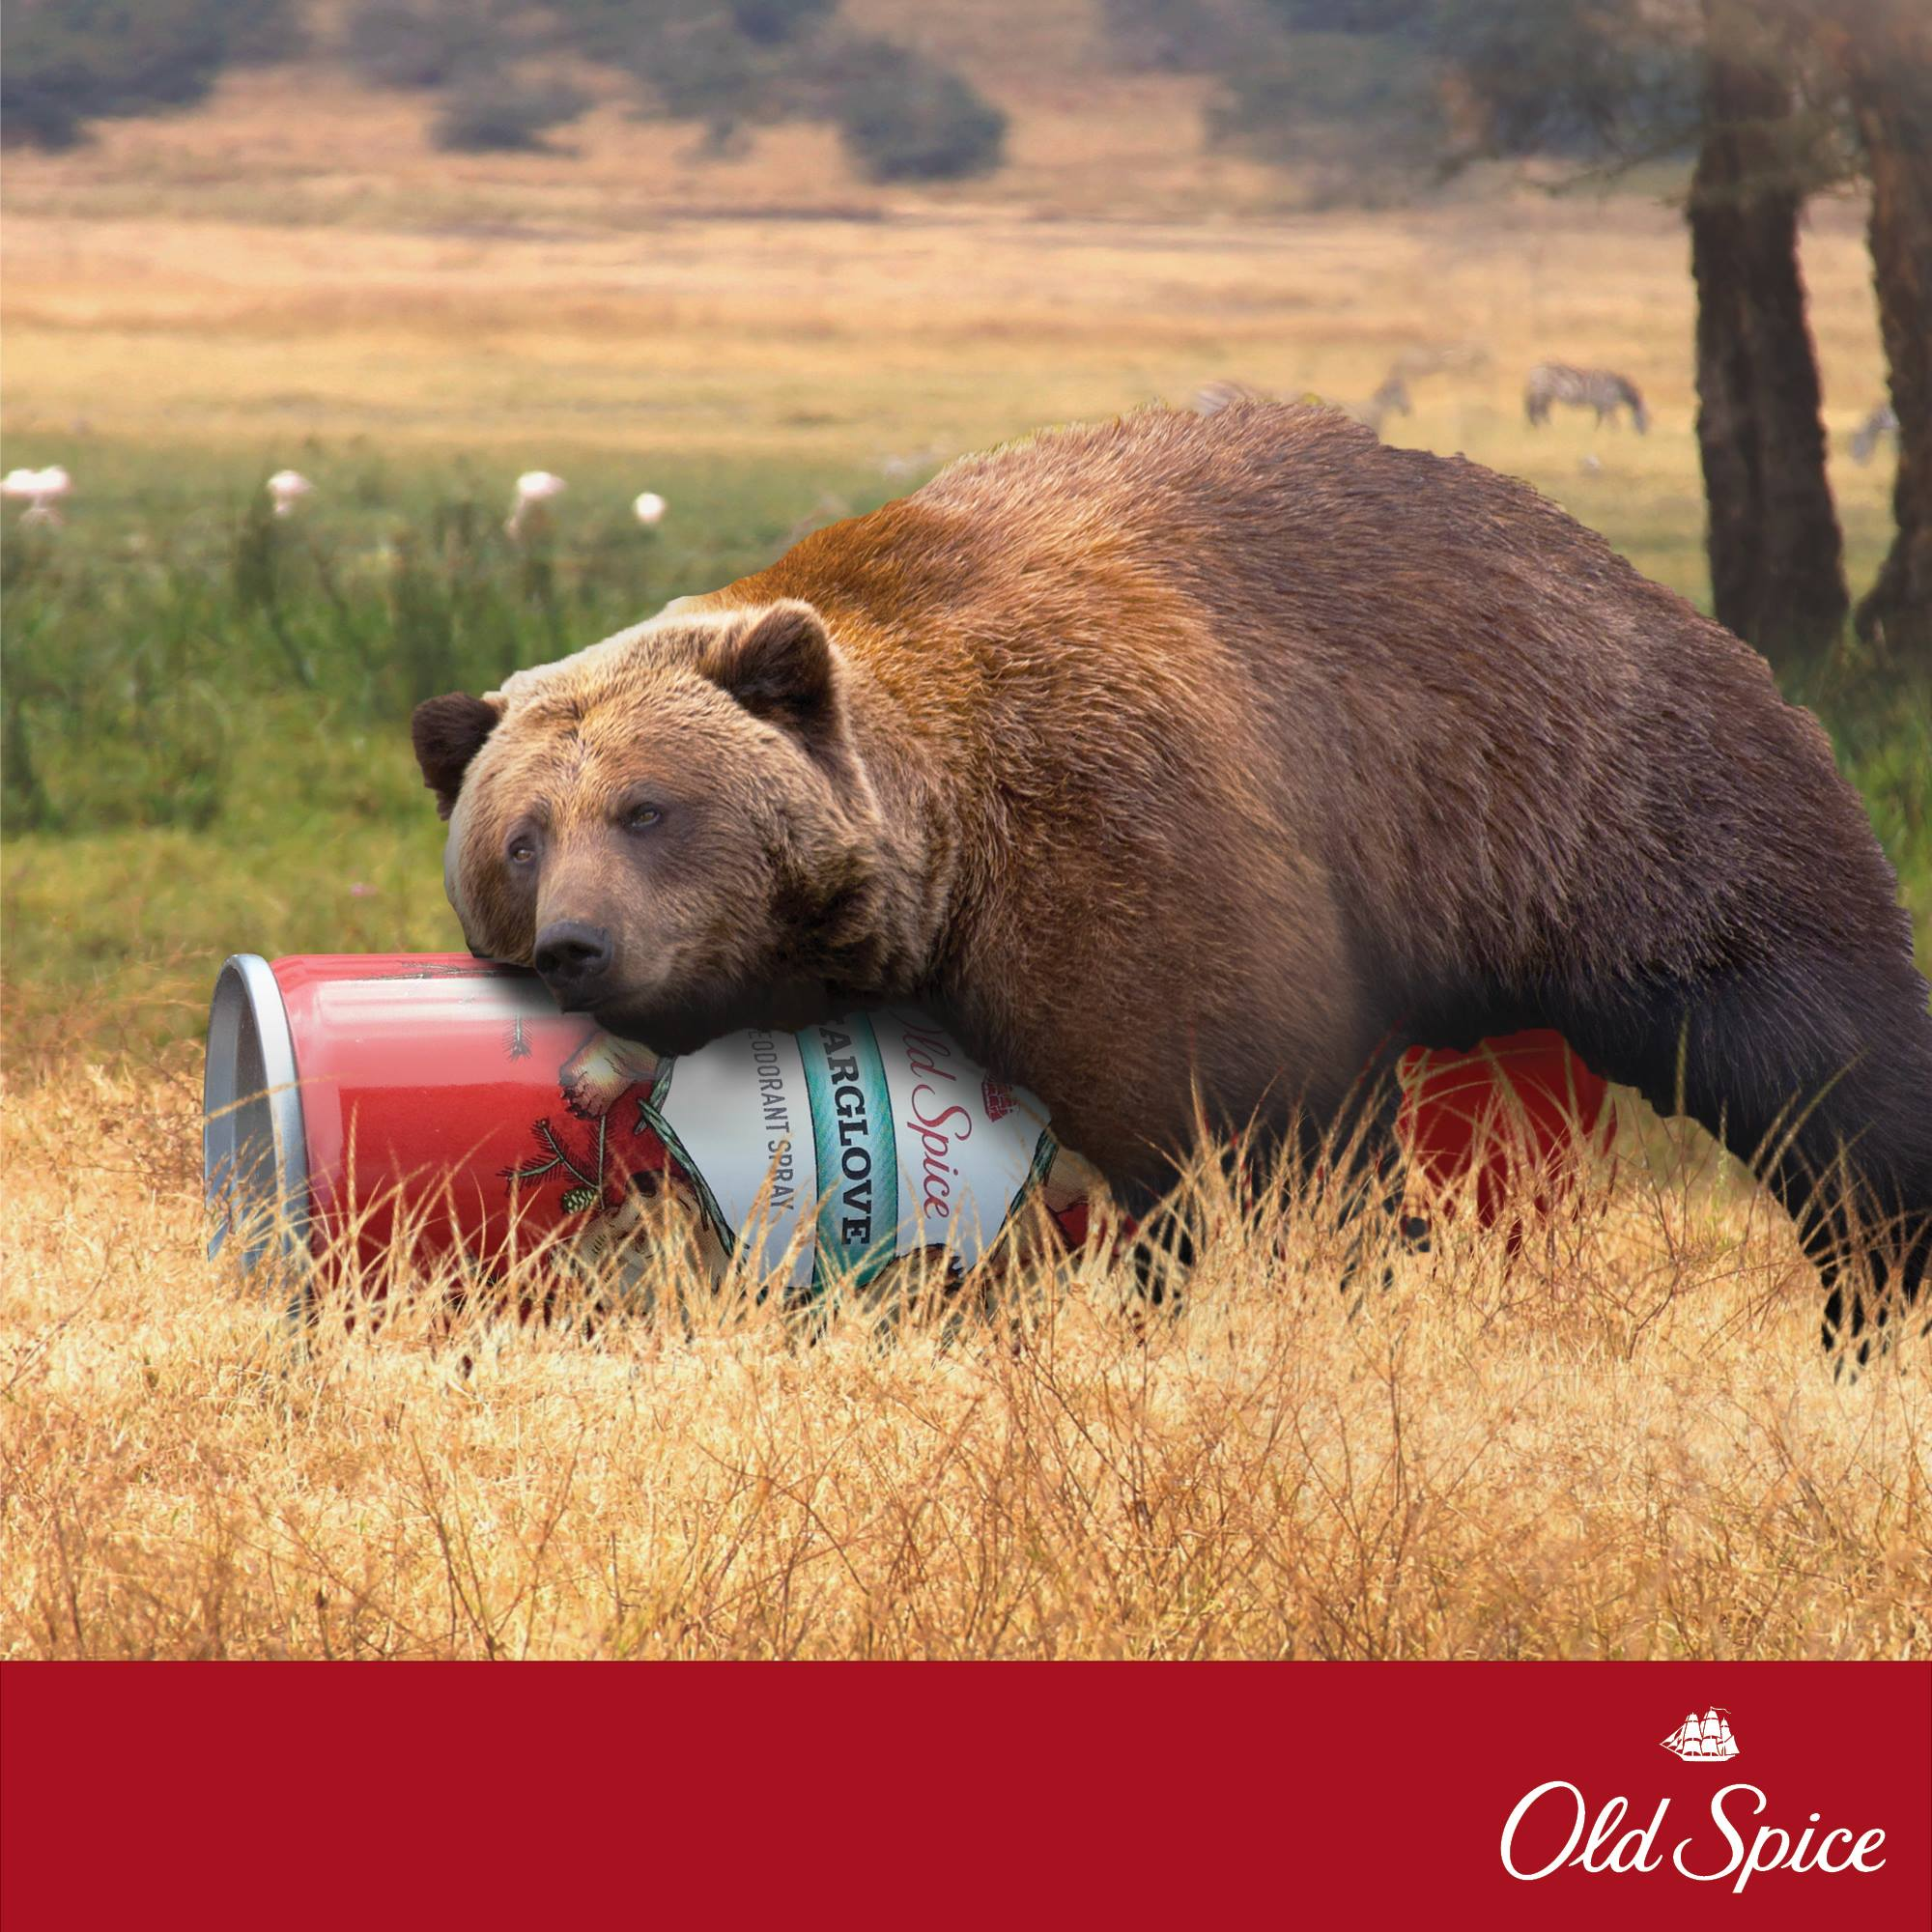 Gorilla social media marketing campaign poster of a bear taking down a can of Old Spice deodorant